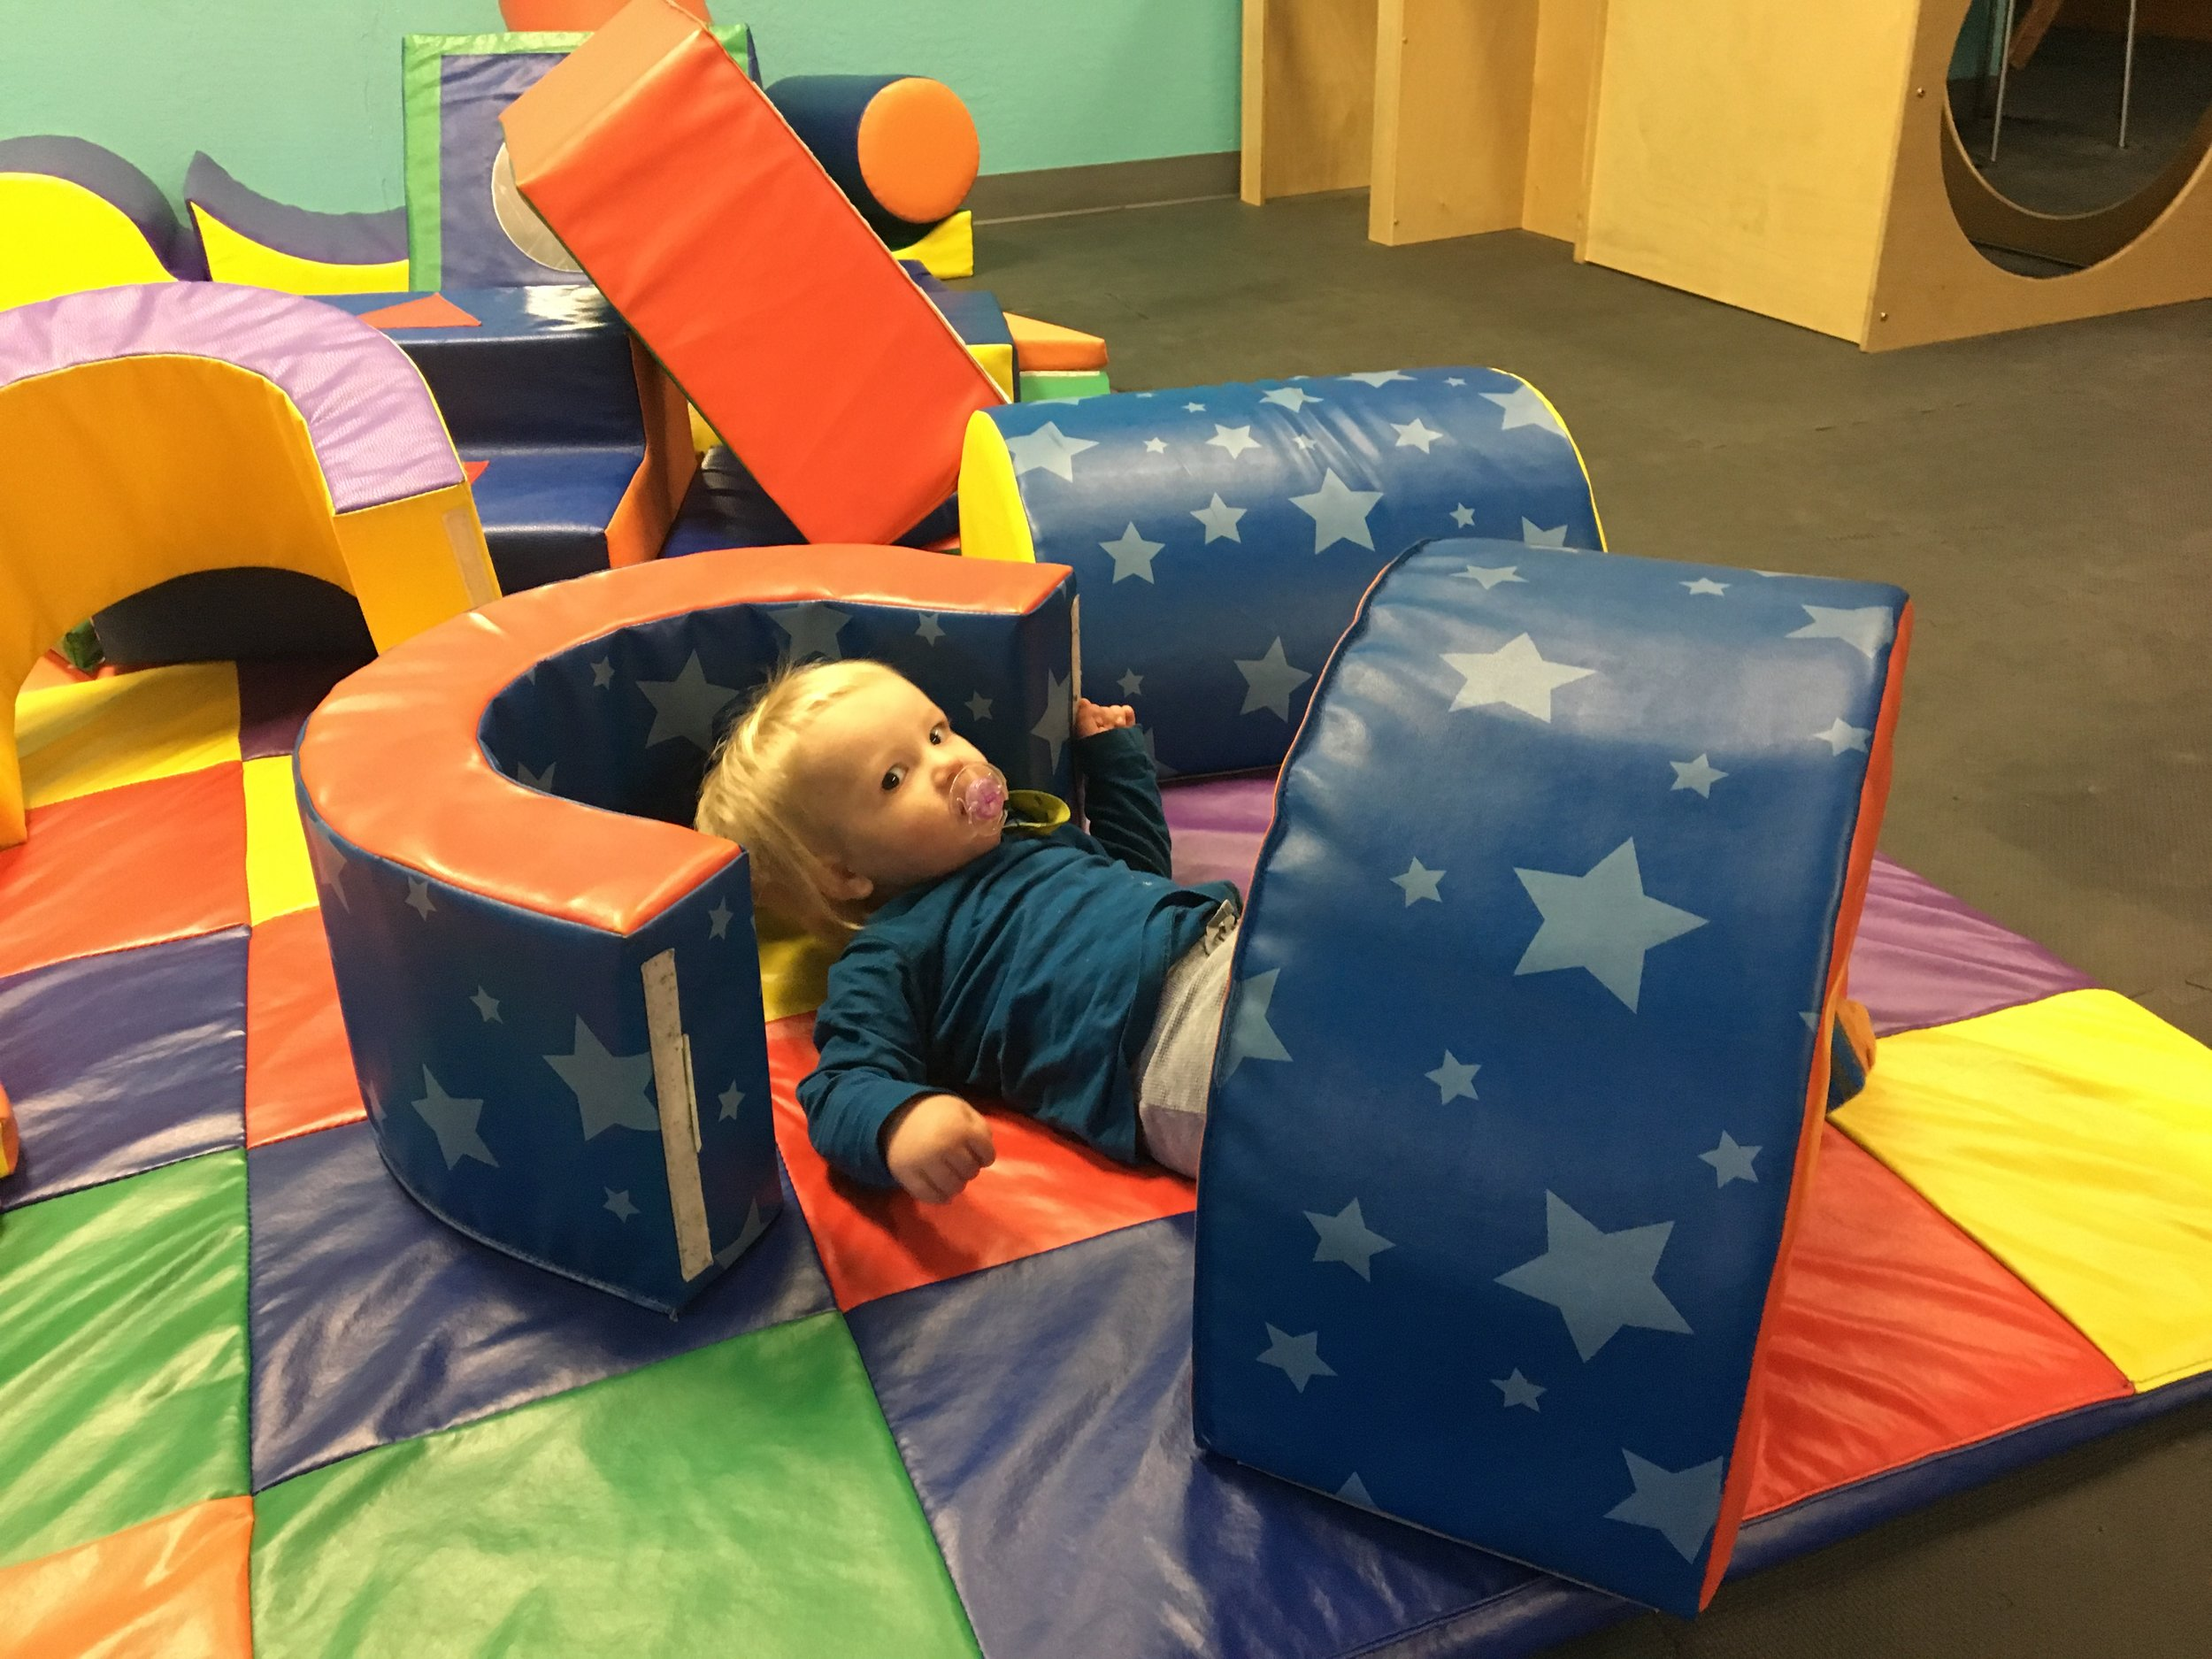 Finally loving the play place